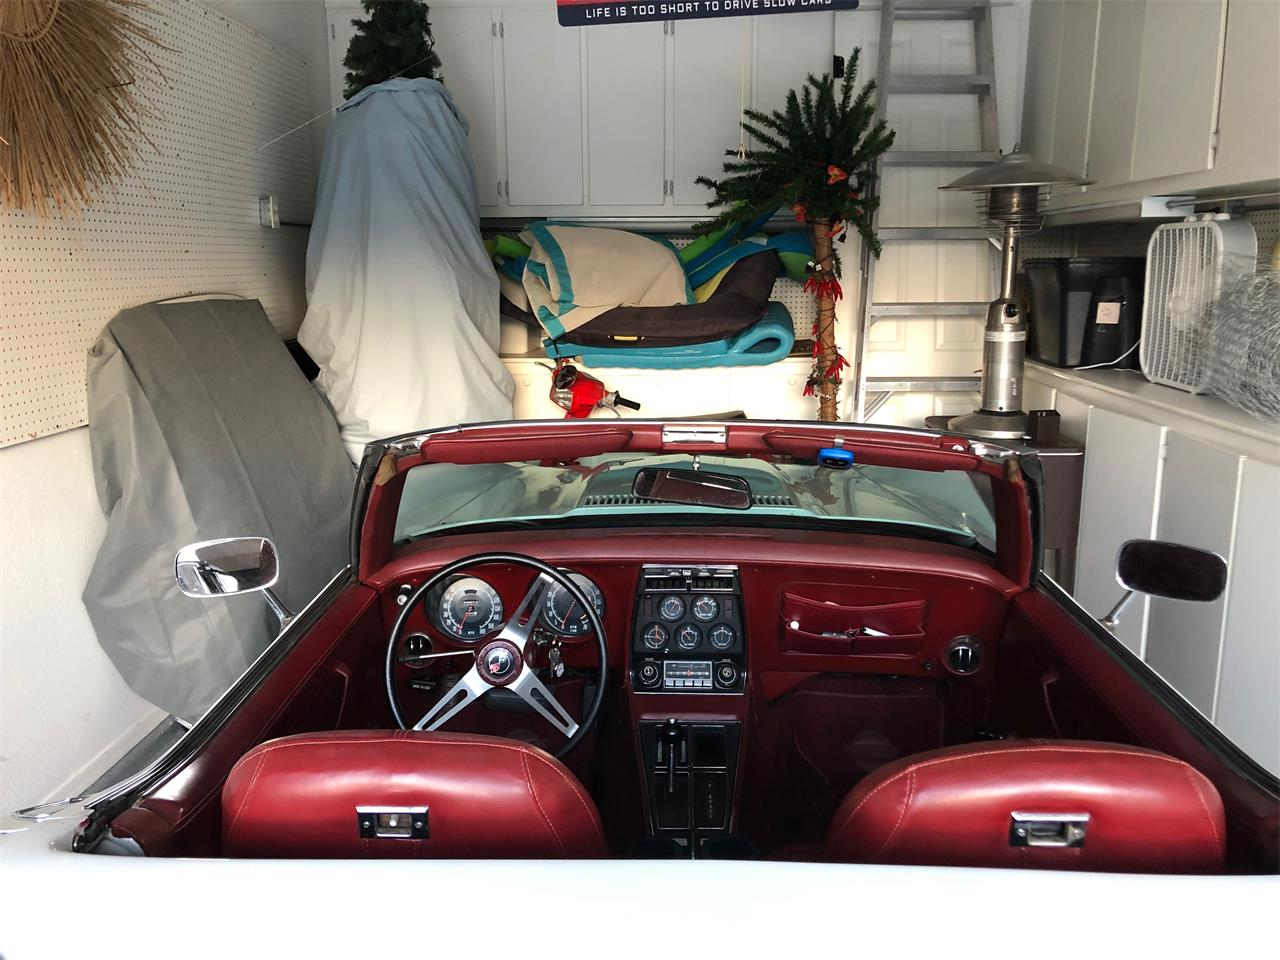 Large Picture of 1973 Corvette located in Arizona Offered by a Private Seller - Q67L